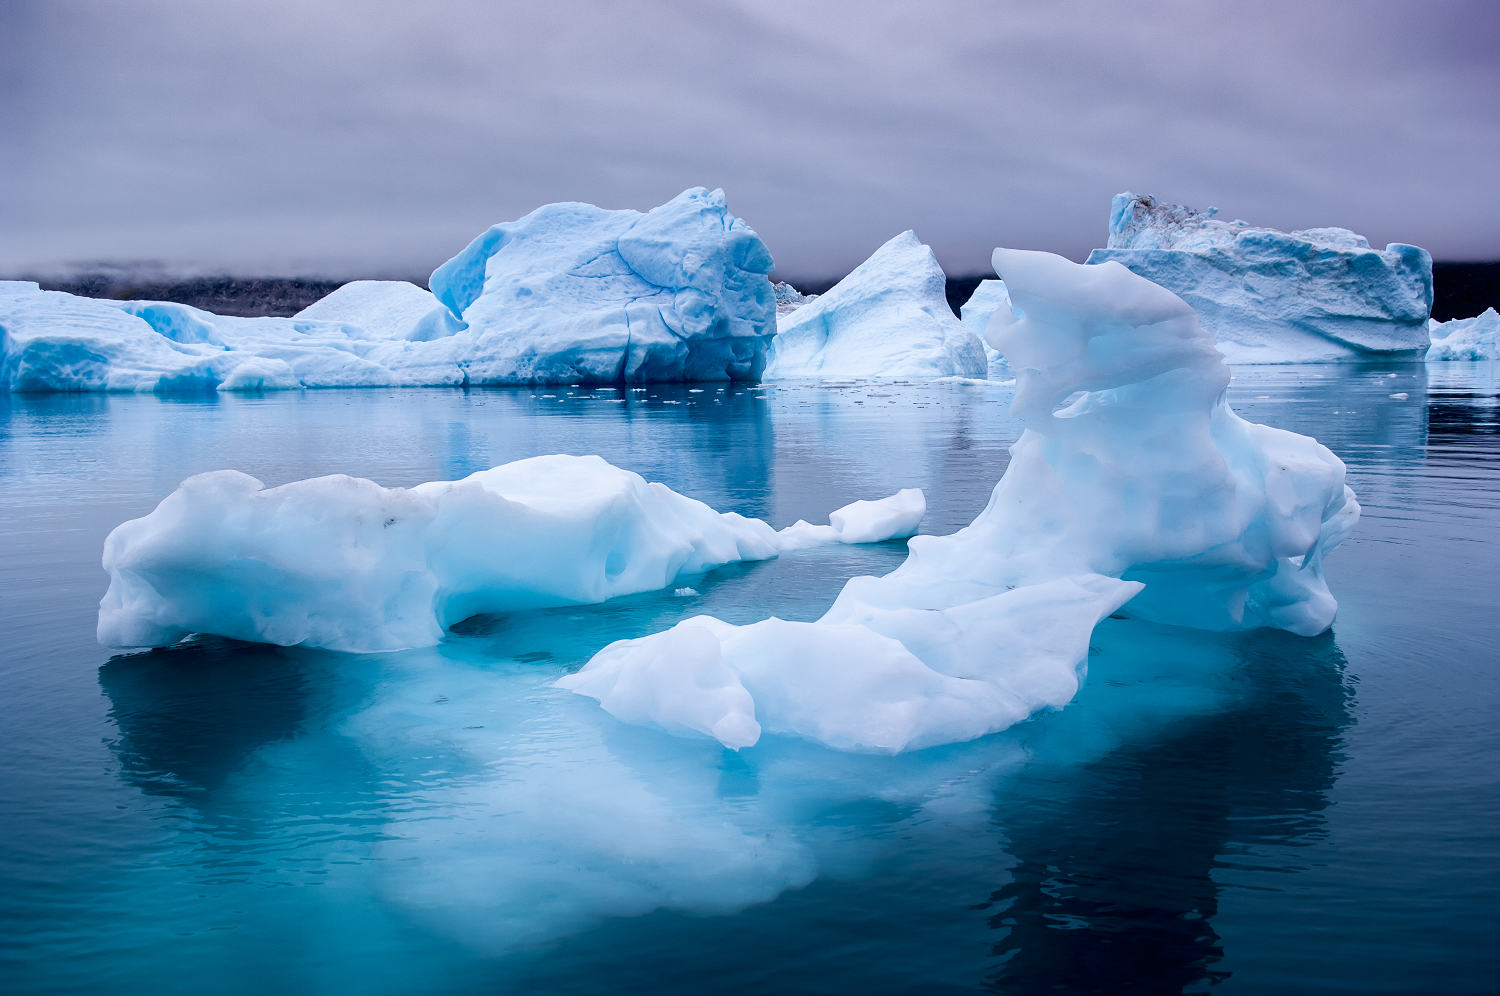 Blue Icebergs in Greenland